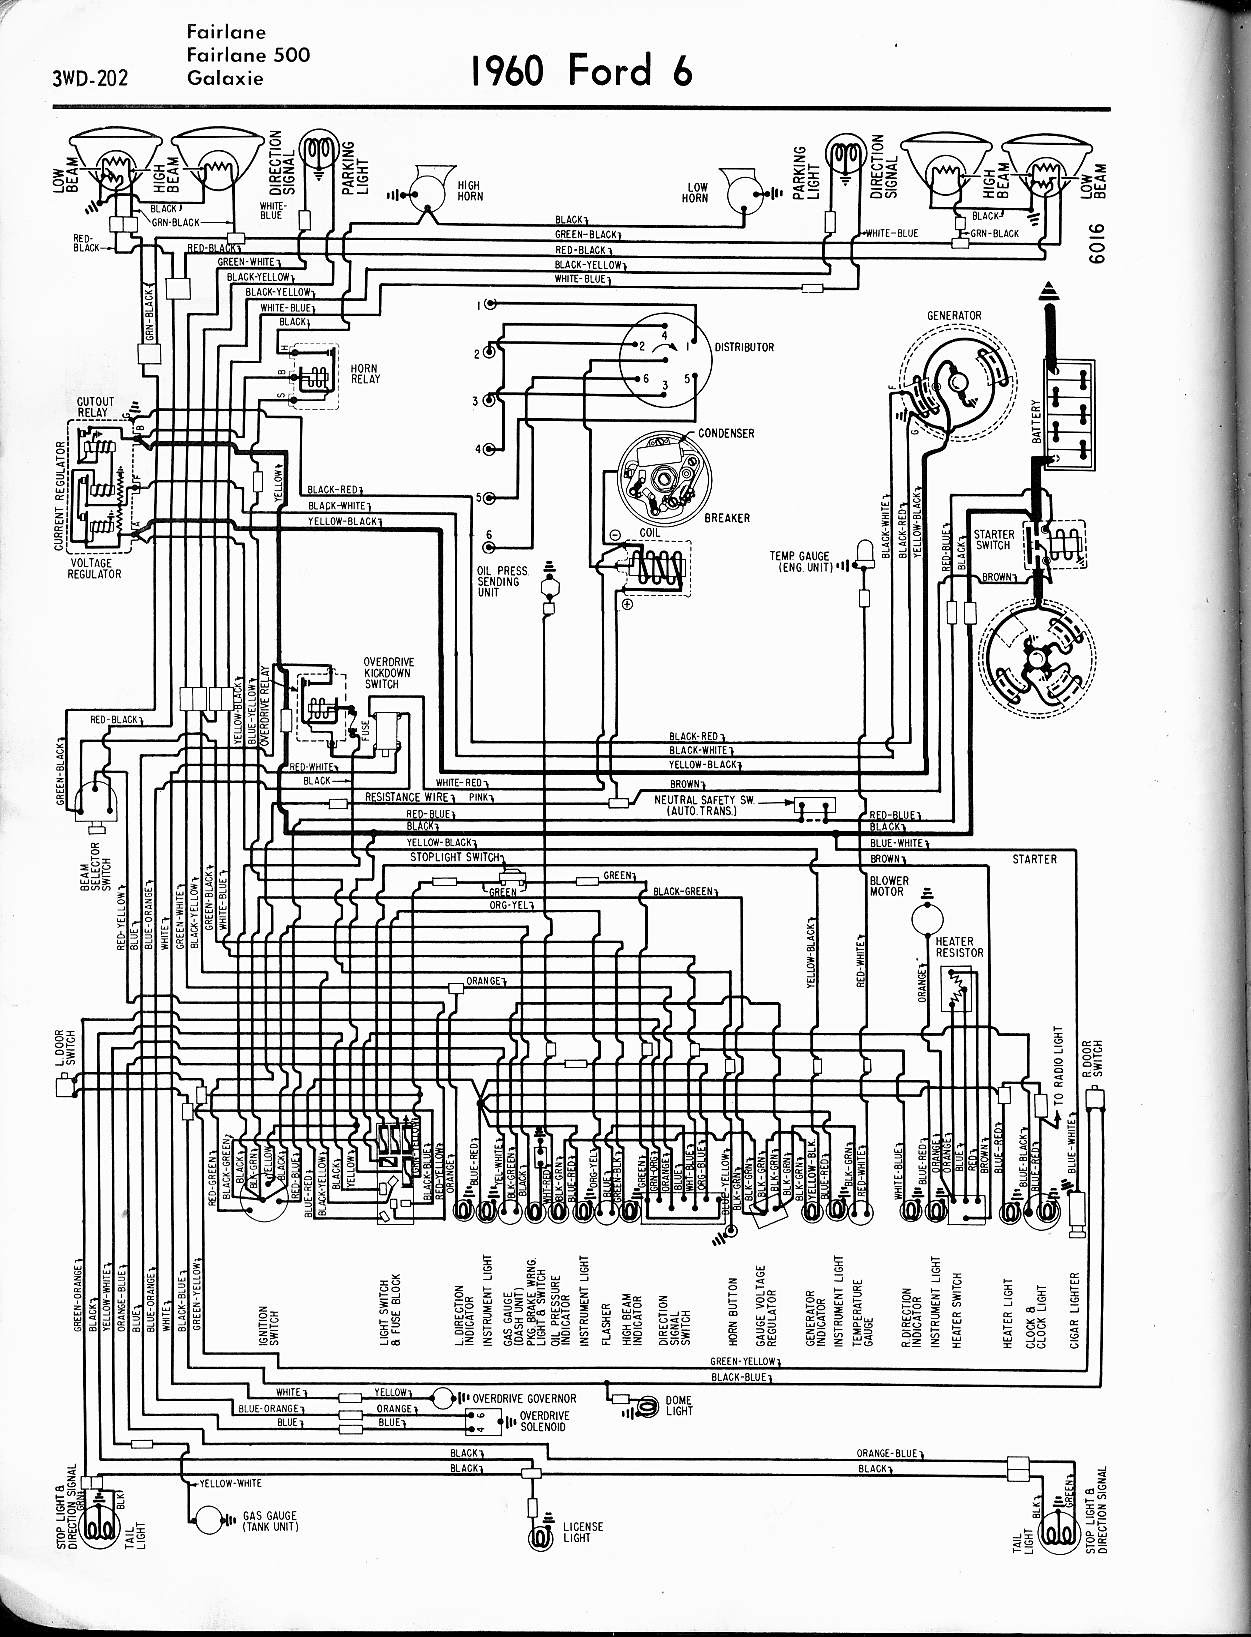 1969 Thunderbird Dash Wiring Diagram 95 Ford Ranger Engine Diagram For Wiring Diagram Schematics